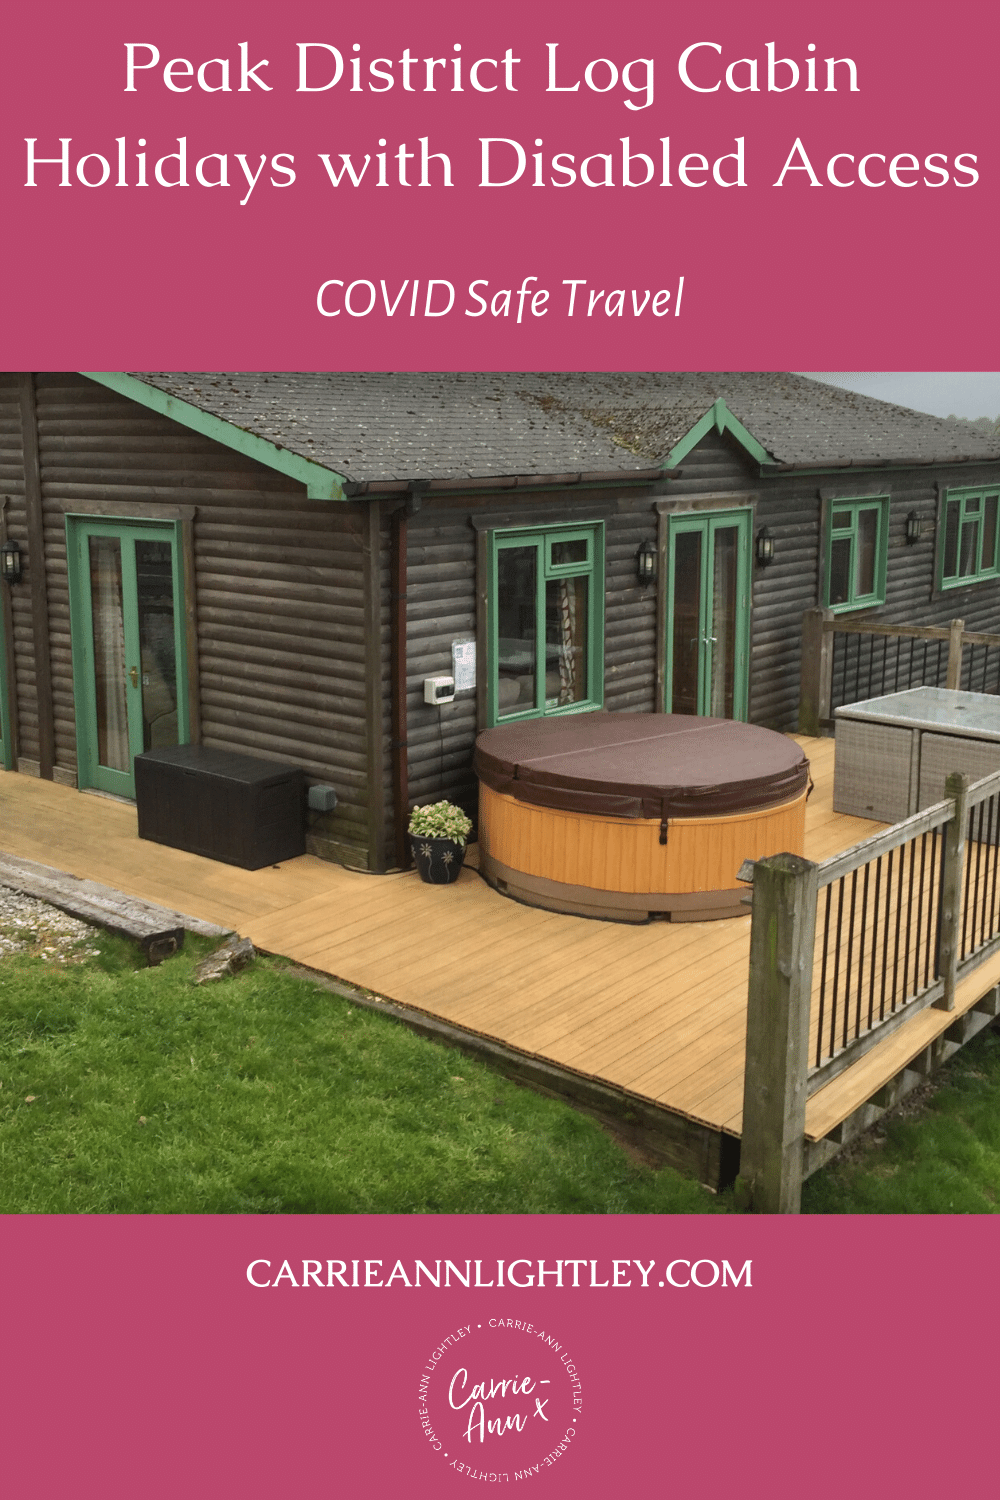 Top of image reads - Peak District Log Cabin Holidays with Disabled Access COVID Safe Travel. Middle of image shows the outside of a log cabin. Bottom of image has this blog's website address and logo.